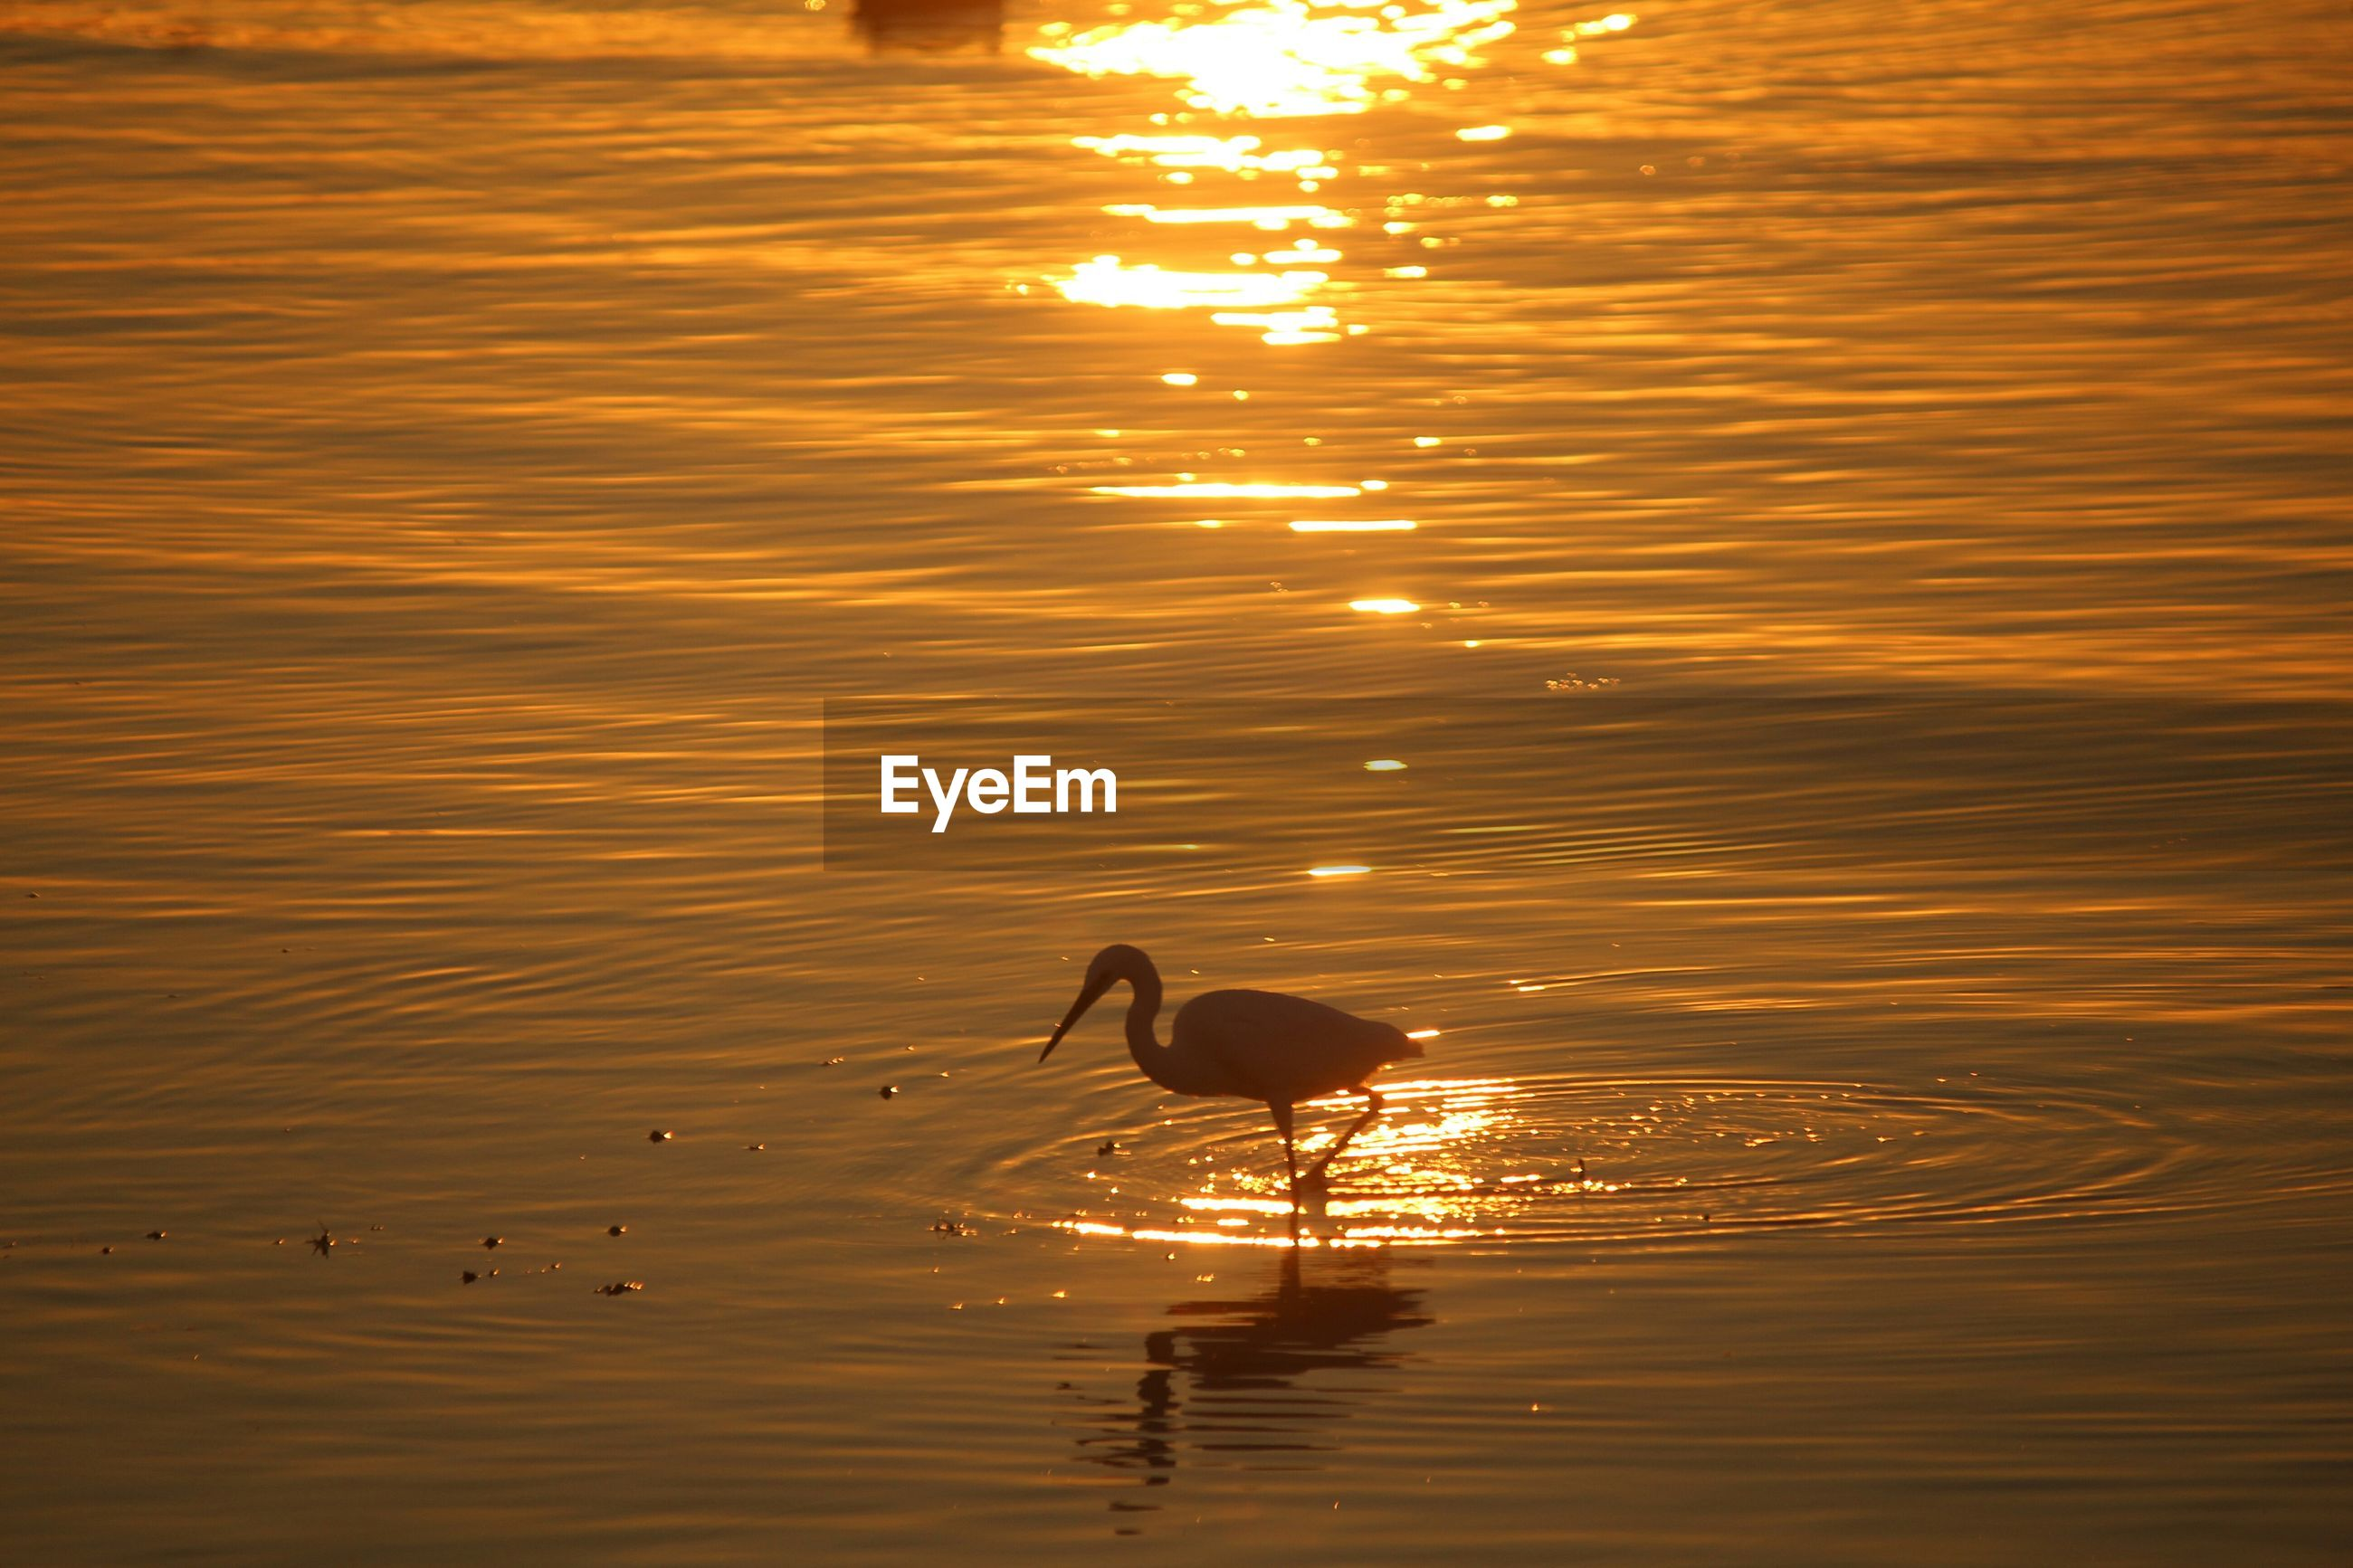 sunset, water, bird, animal themes, animals in the wild, wildlife, reflection, orange color, one animal, waterfront, rippled, lake, sun, silhouette, duck, sunlight, nature, beauty in nature, swimming, tranquility